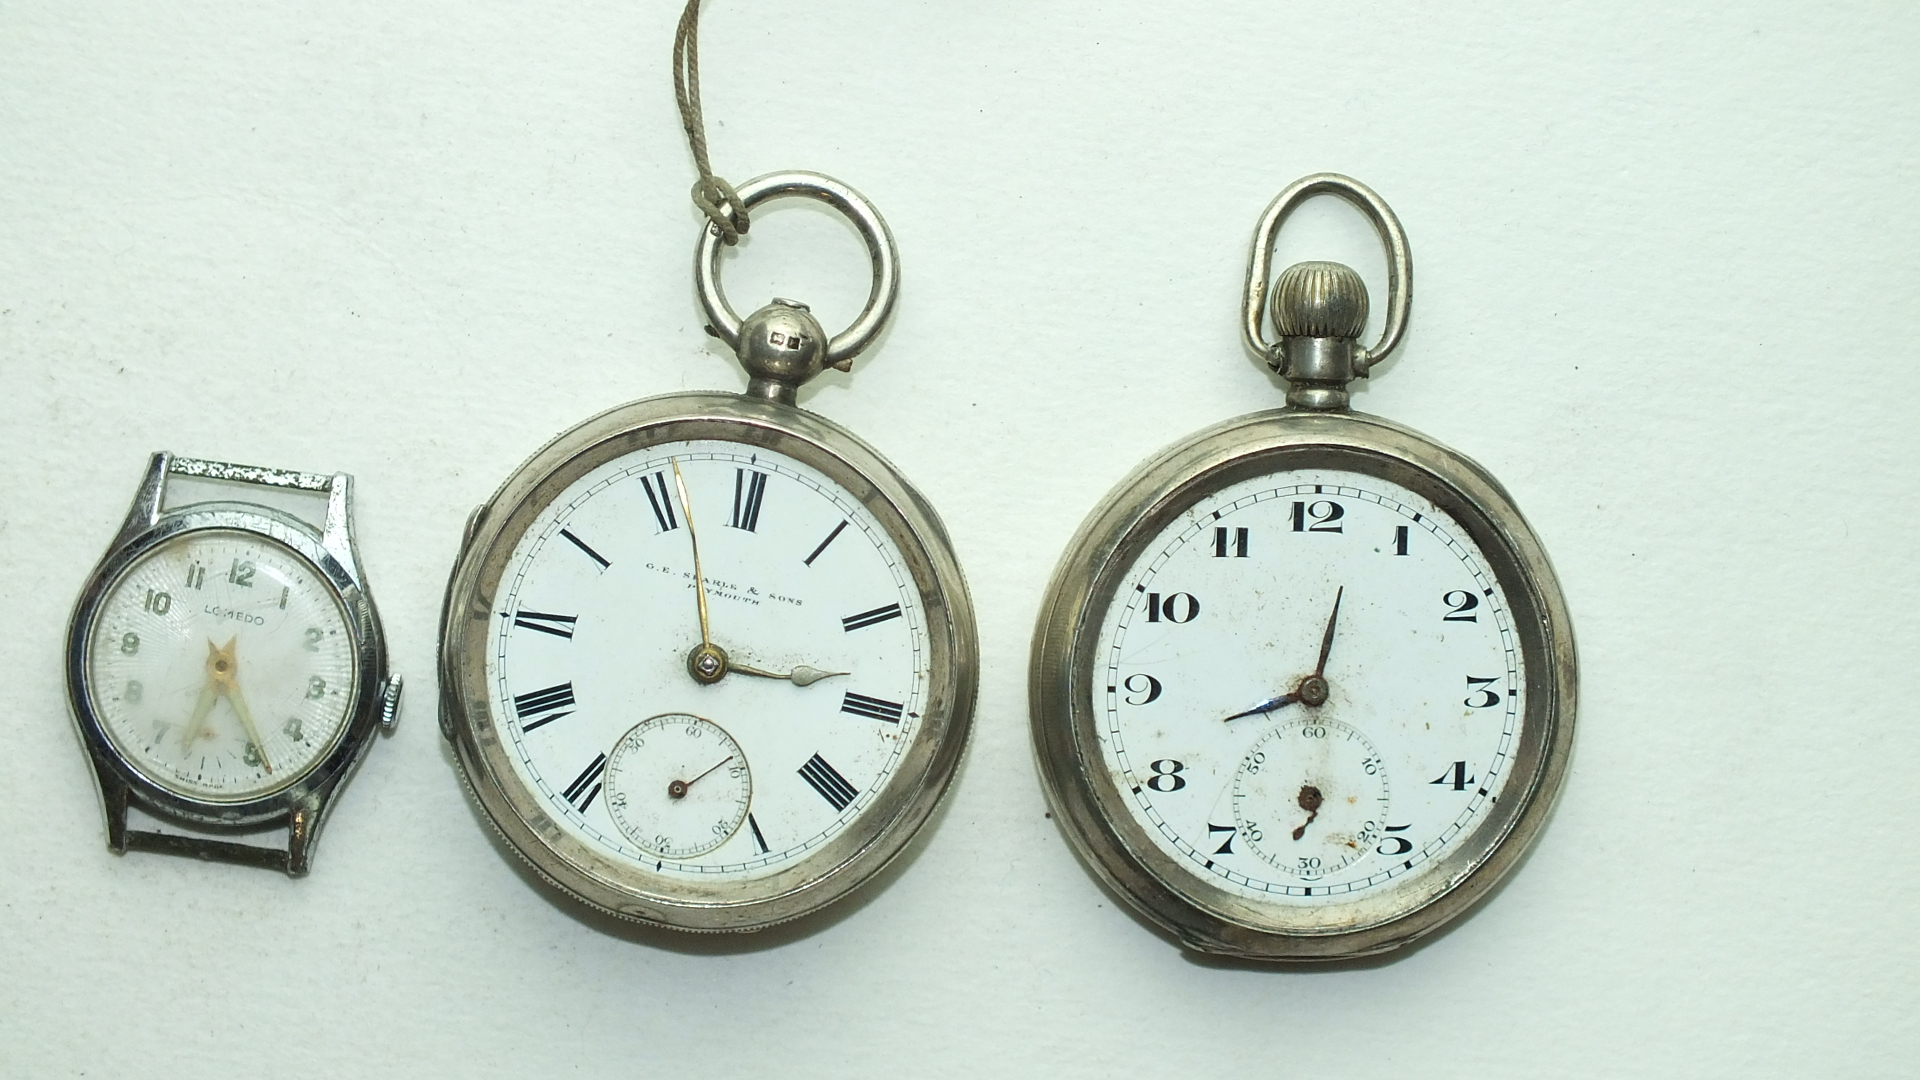 Lot 266 - Two silver-cased open-face pocket watches, (1 a/f) and a Lomedo wrist watch, (a/f), (3).